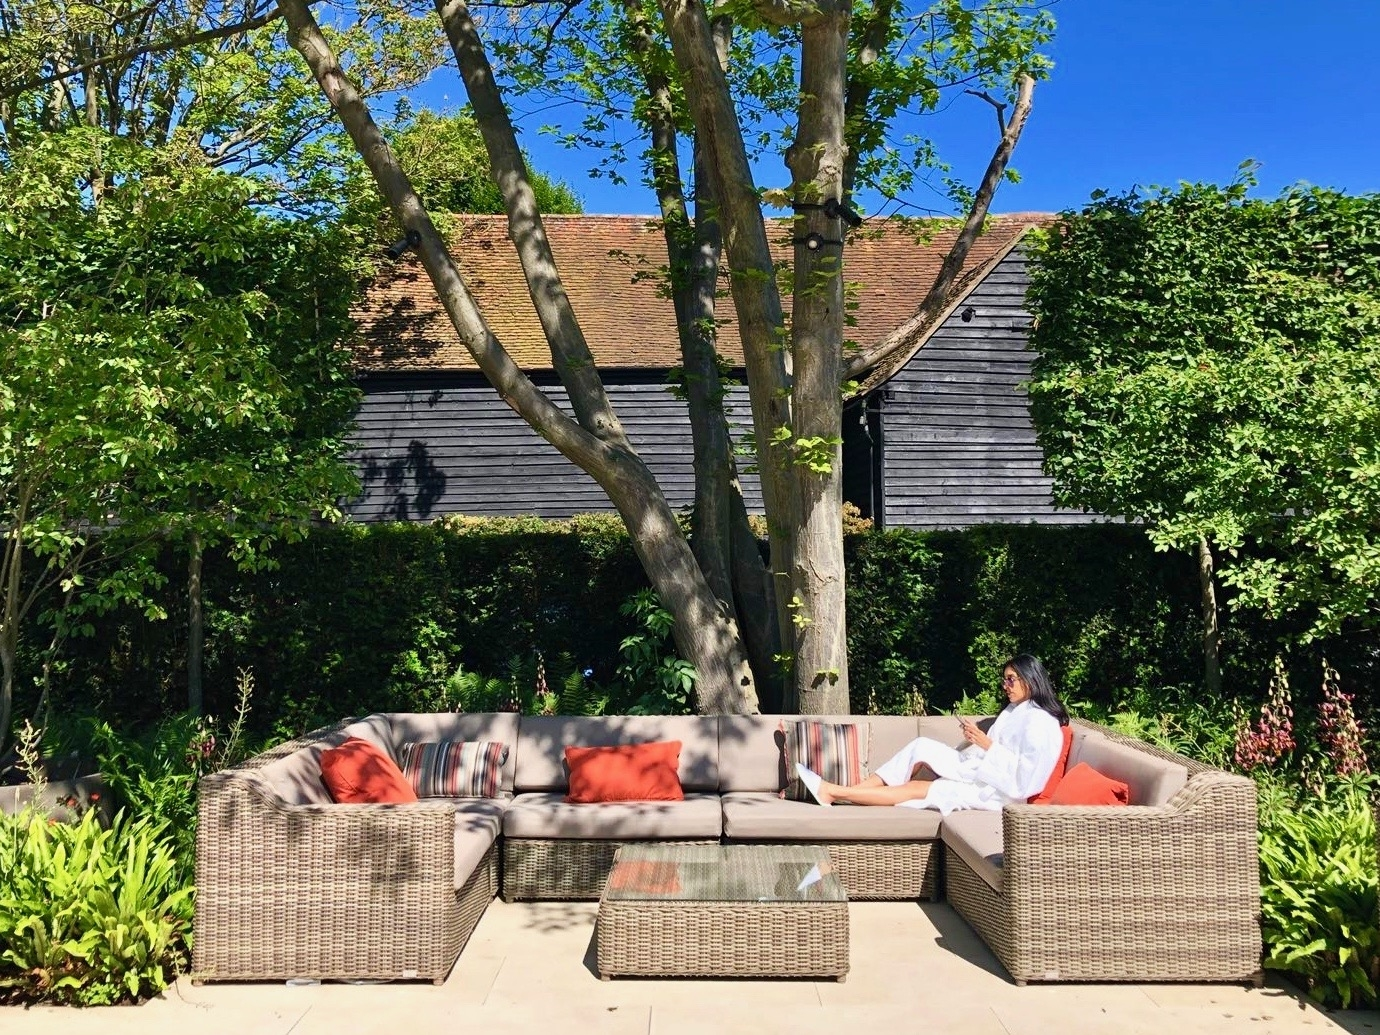 Sopwell House: St Albans Luxury Retreat | The Curious Pixie with regard to Garden House Restaurant St Albans